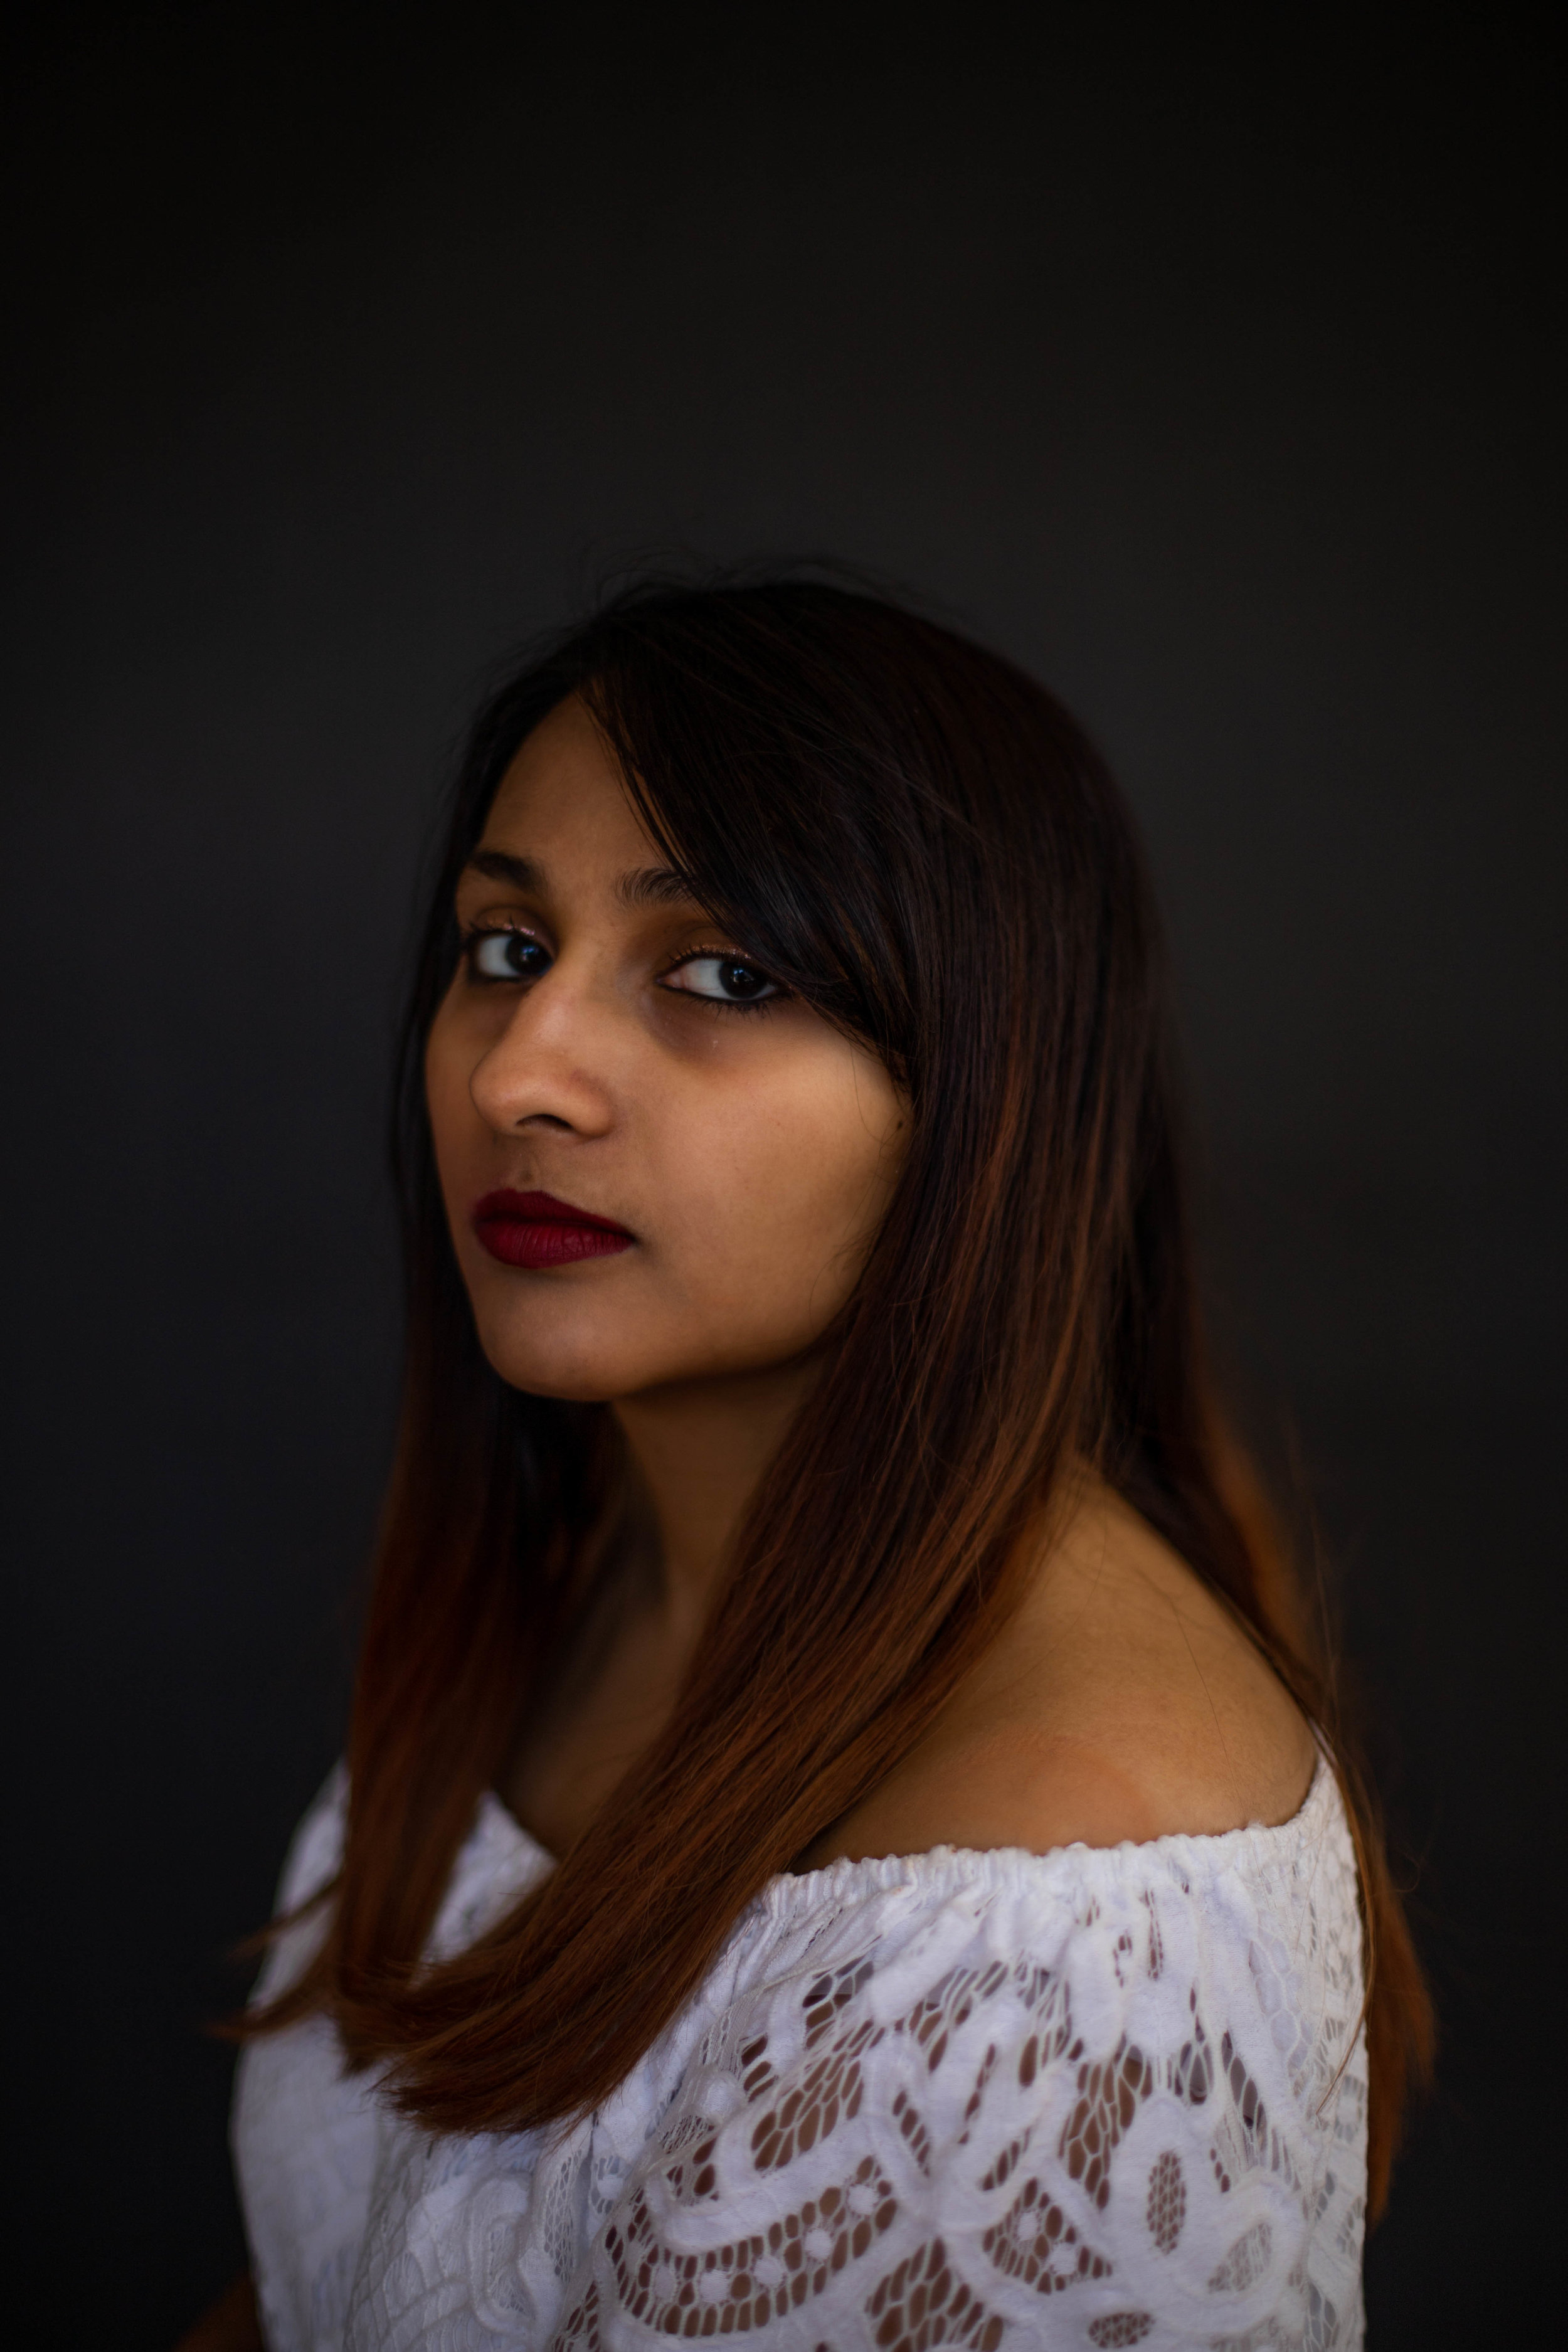 Shreya - Being a law student and being a woman of color are two fundamental aspects of my identity. At times it feels like the two are in conflict with each other. I want to be my most authentic self, but as a law student and future lawyer I am expected to act in a certain way. I think solidarity among POC in the legal system is critical for encouraging future generations of lawyers. Working together will help create a community where people can be their true authentic selves and not have that clash with their career as a lawyer. My goal is to make change within the system so future generations of lawyers of color can be their authentic selves and not have to worry about fitting into a predetermined mold.